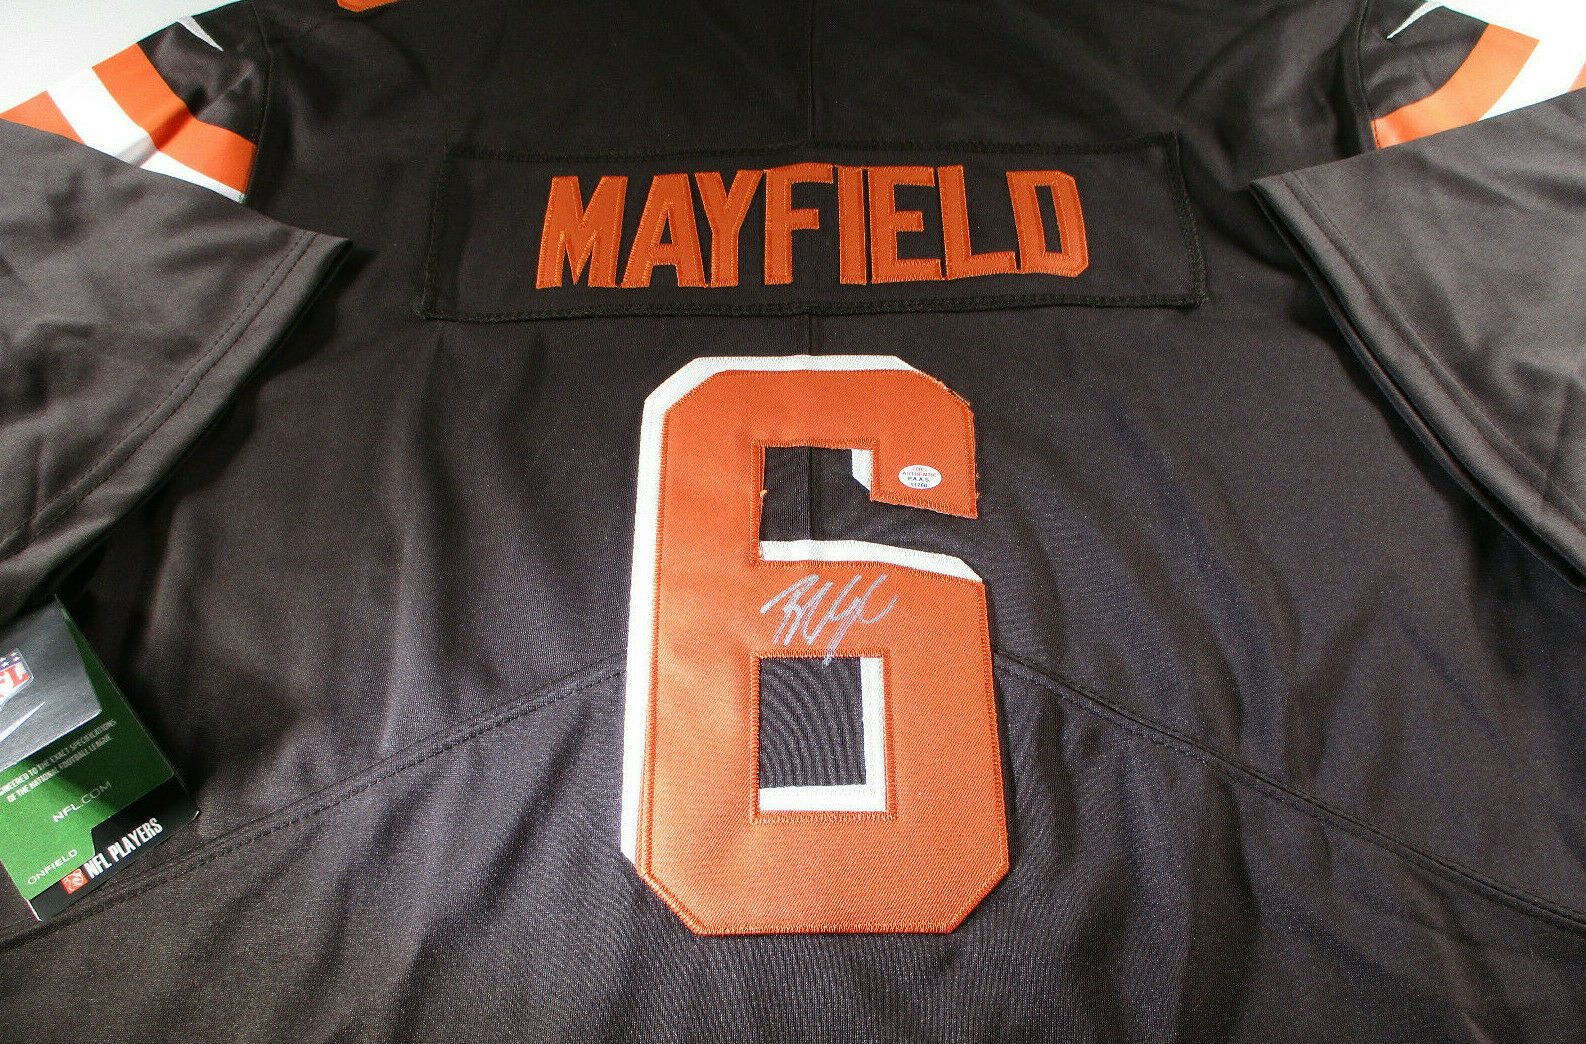 BAKER MAYFIELD / CLEVELAND BROWNS QB / AUTOGRAPHED BROWNS PRO STYLE JERSEY / COA